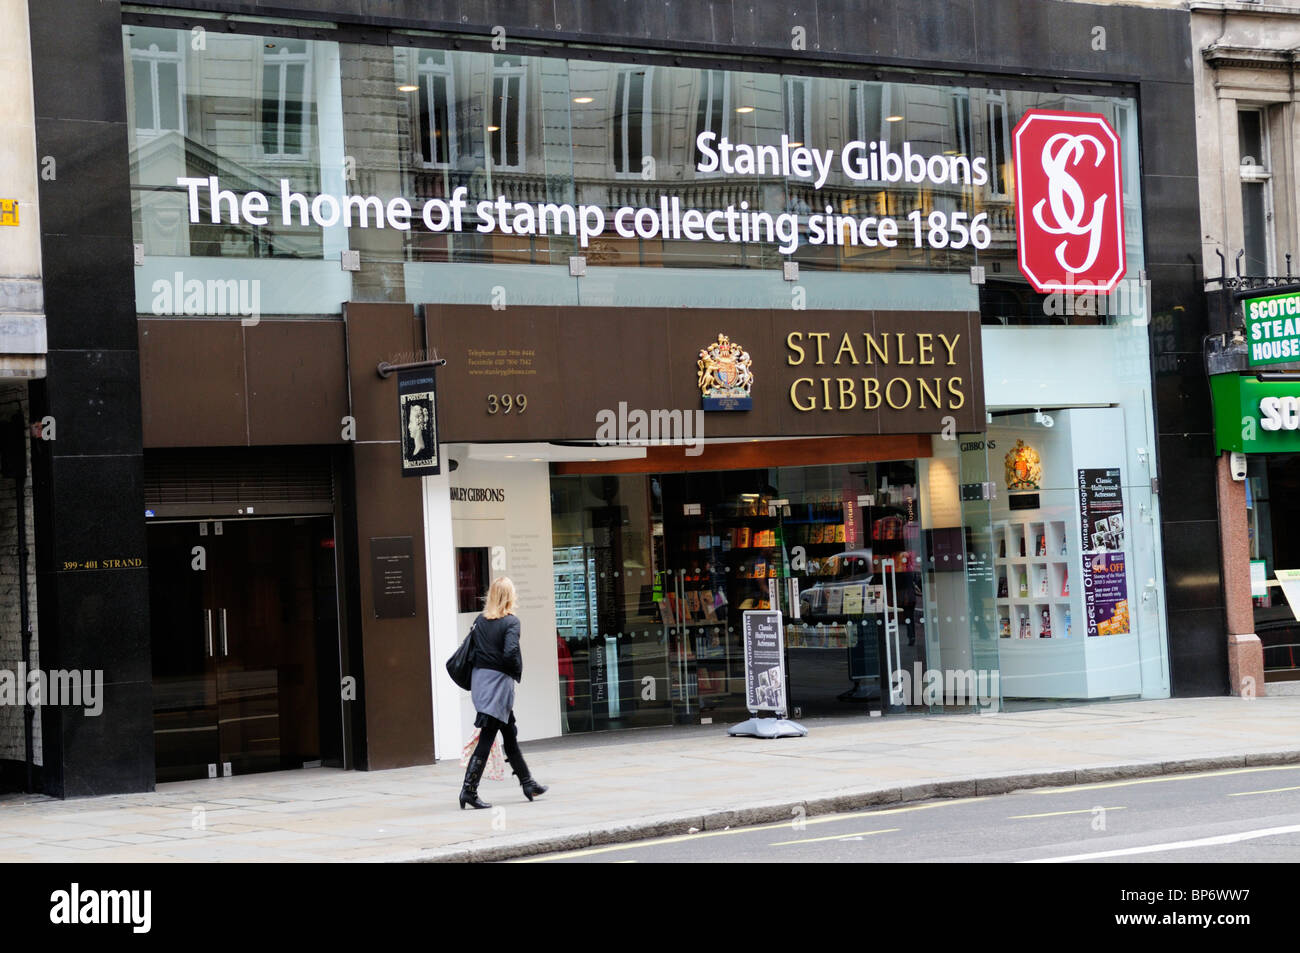 Stanley Gibbons Stamp Collecting Philately shop, The Strand, London, England, UK - Stock Image